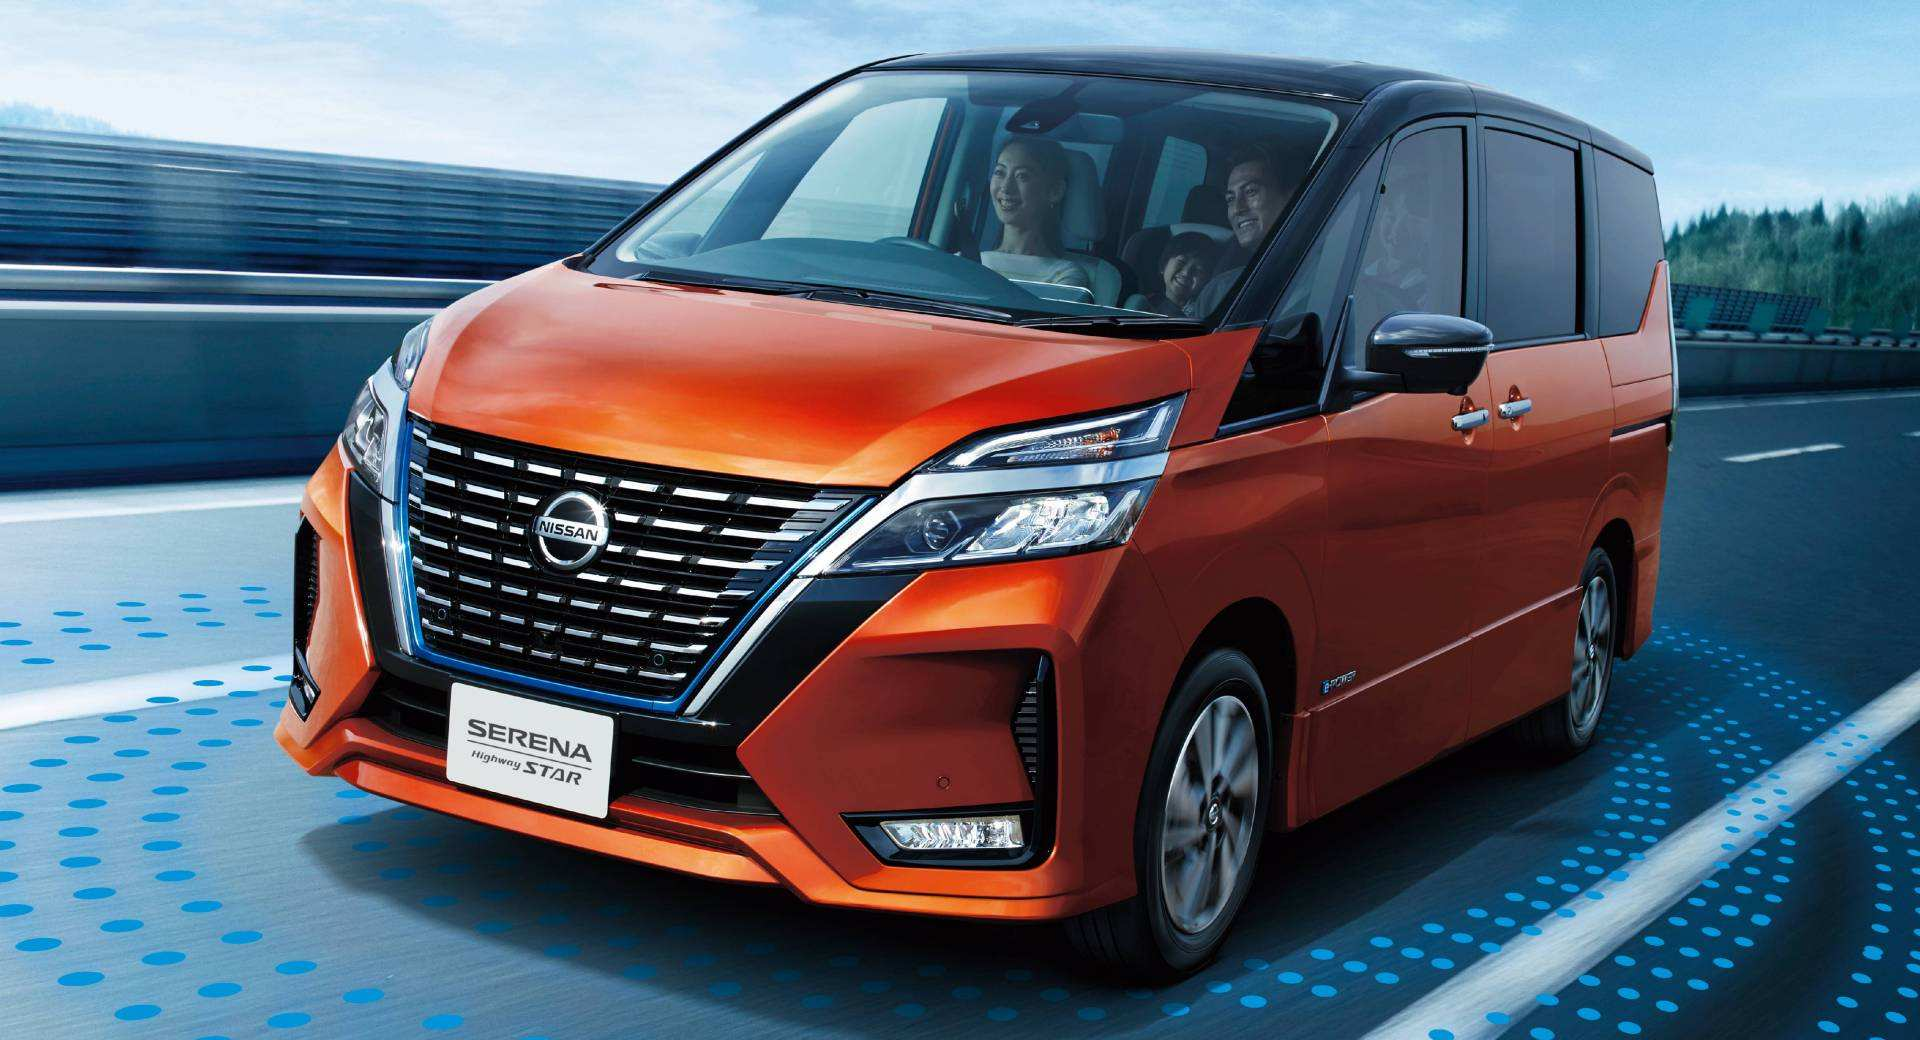 24 Concept of Nissan Serena 2020 Exterior and Interior for Nissan Serena 2020